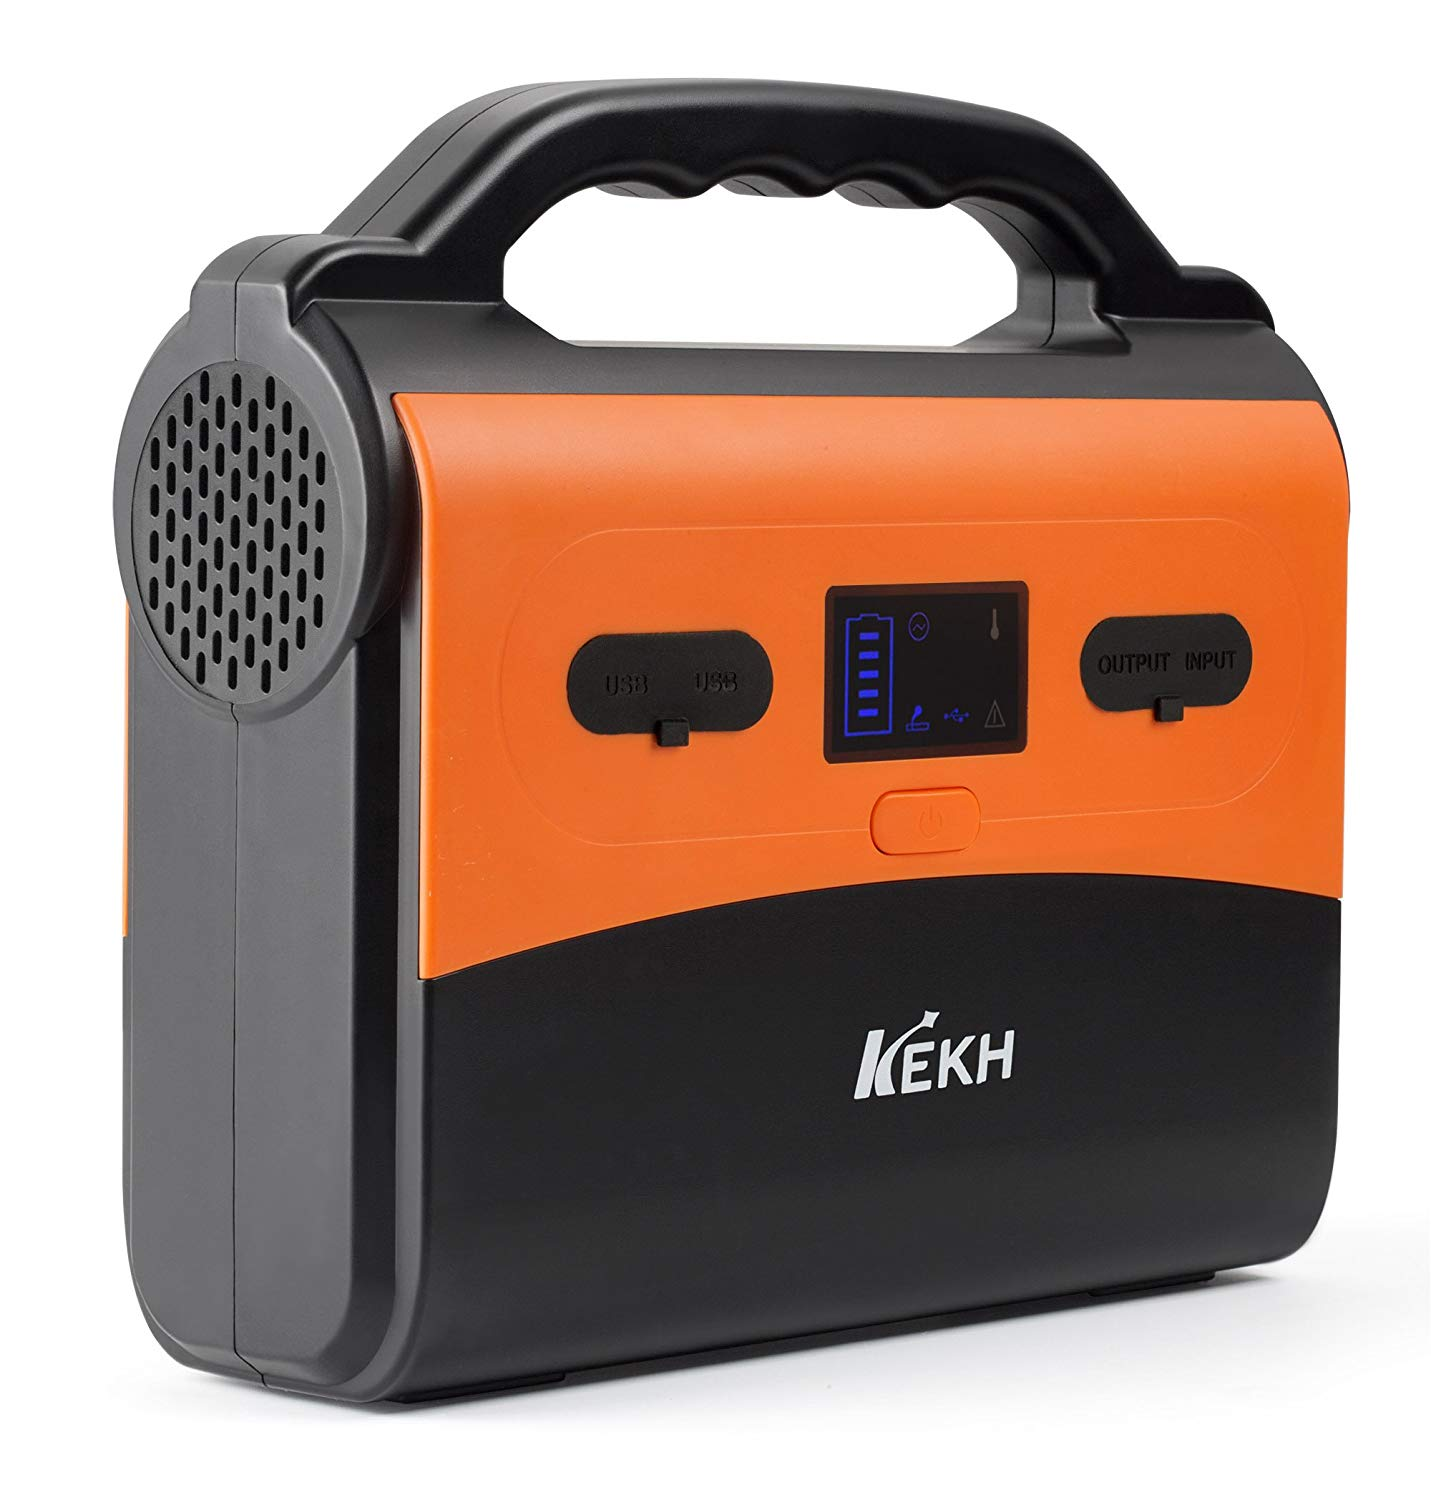 KEKH Portable Power Station Generator -200WH/54000mAh Portable Inverter with 2 AC Output, 2 DC, 2 USB, Power Supply Charged by Solar/Wall Outlet/Cars, LED Flashlights for Camping Travel CPAP